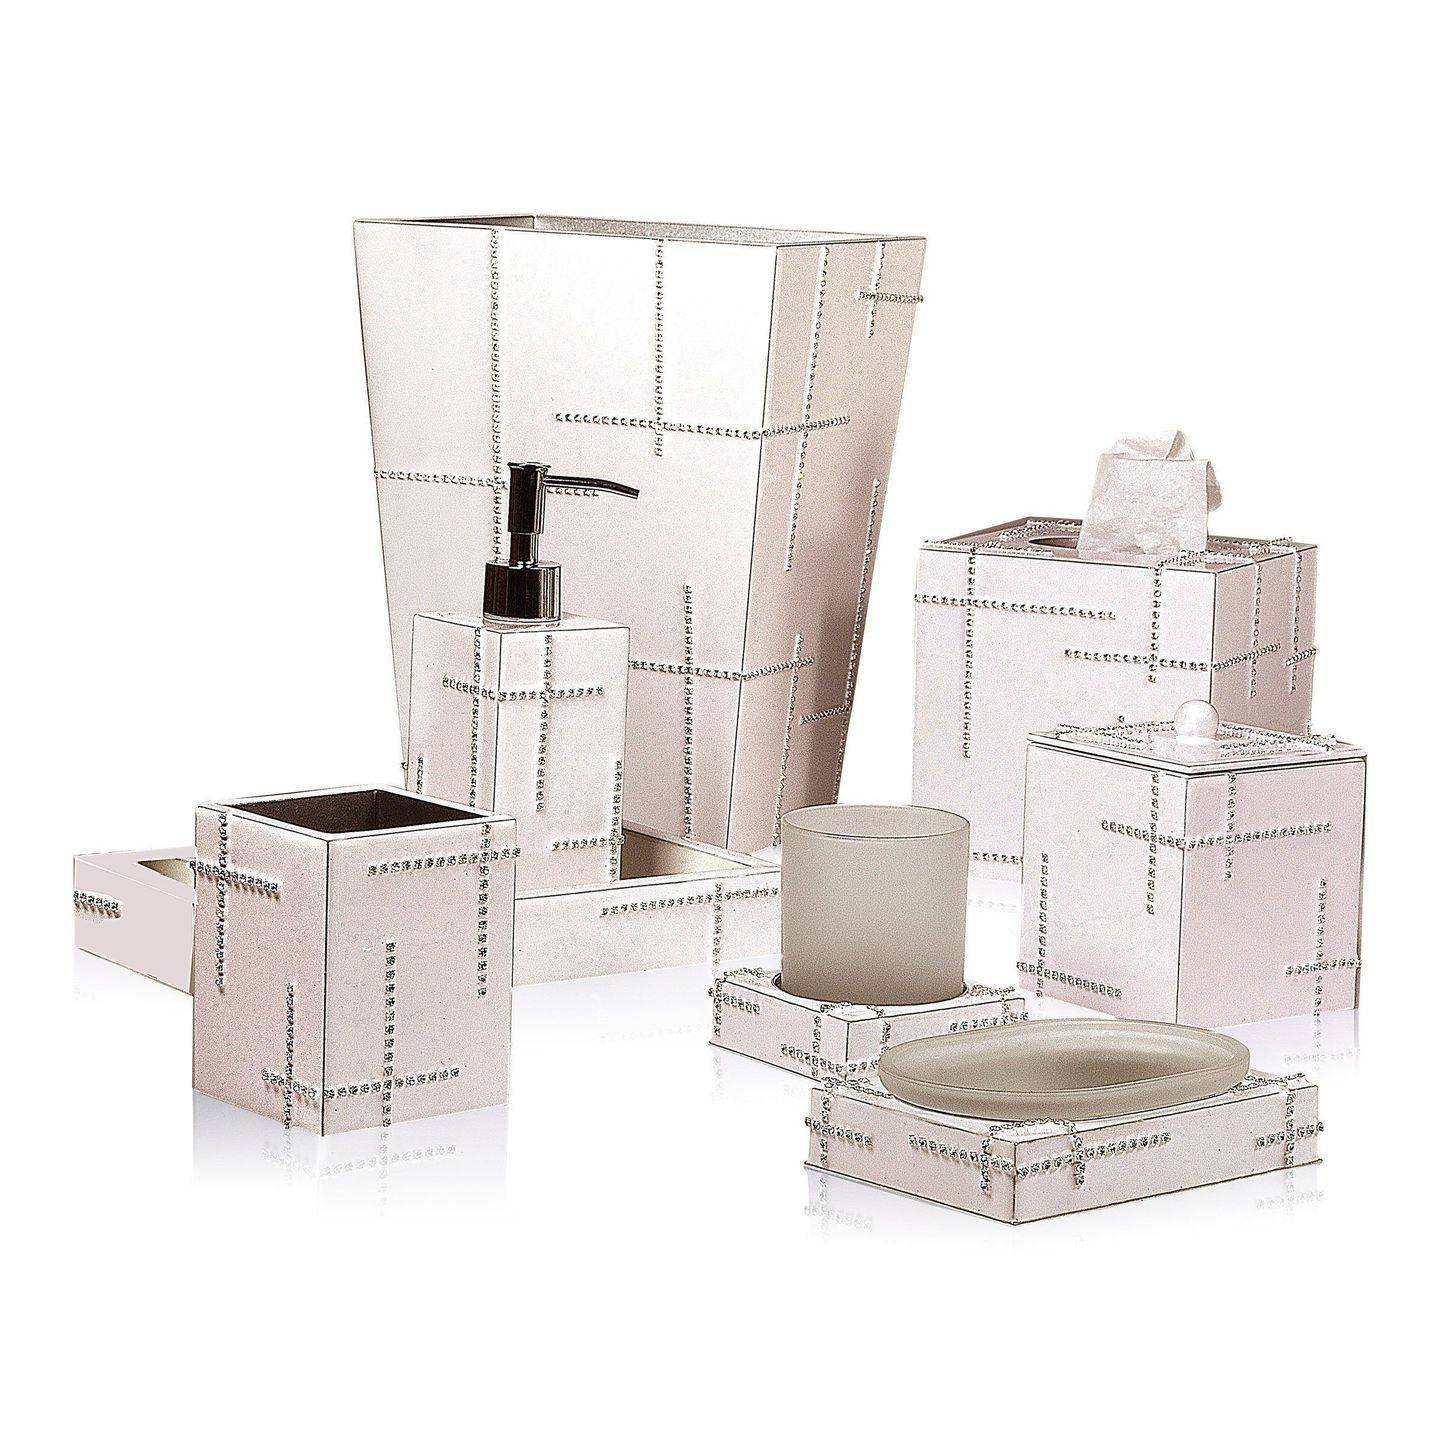 Mike + Ally Avanti Bath Accessories by Mike + Ally